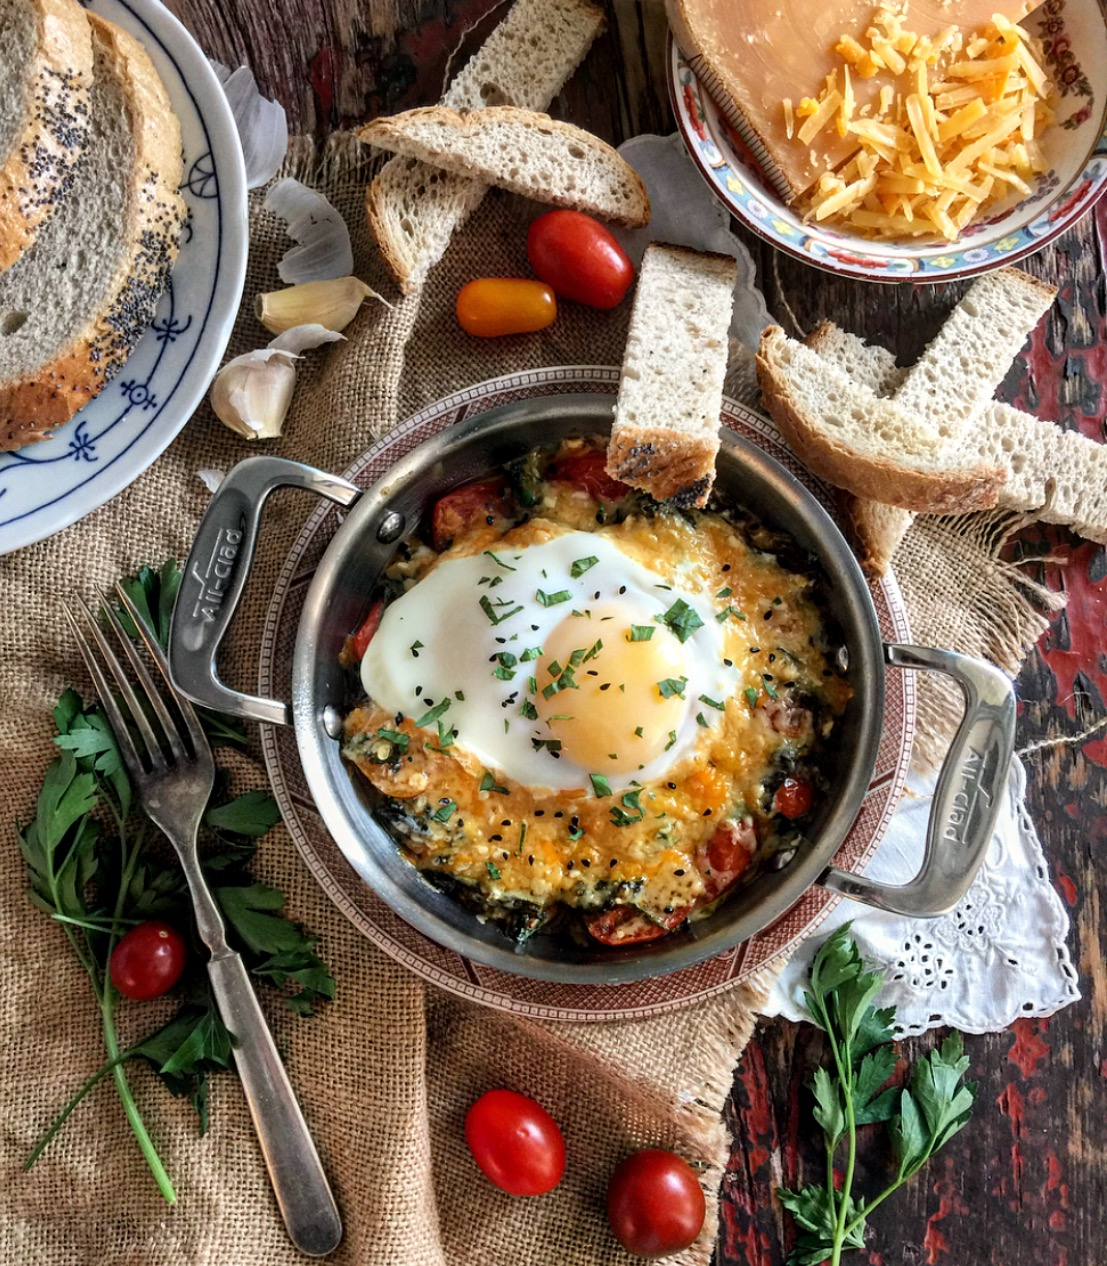 Blissful Baked Eggs with Smoked Cheddar, Kale and Harissa Cherry Tomatoes